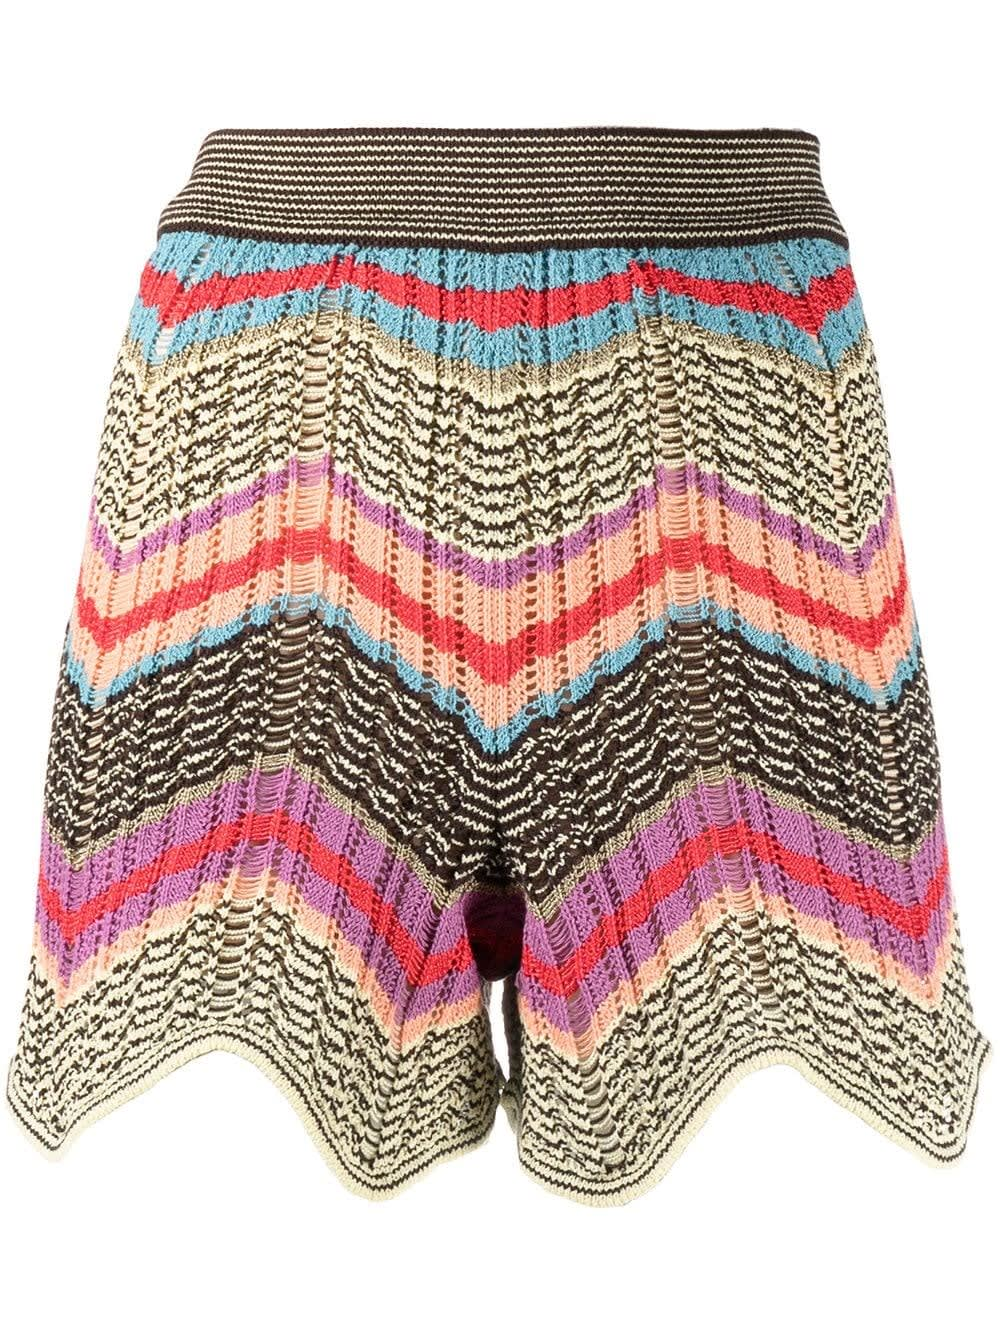 M Missoni Shorts ZIG-ZAG MULTICOLOR KNITTED SHORTS